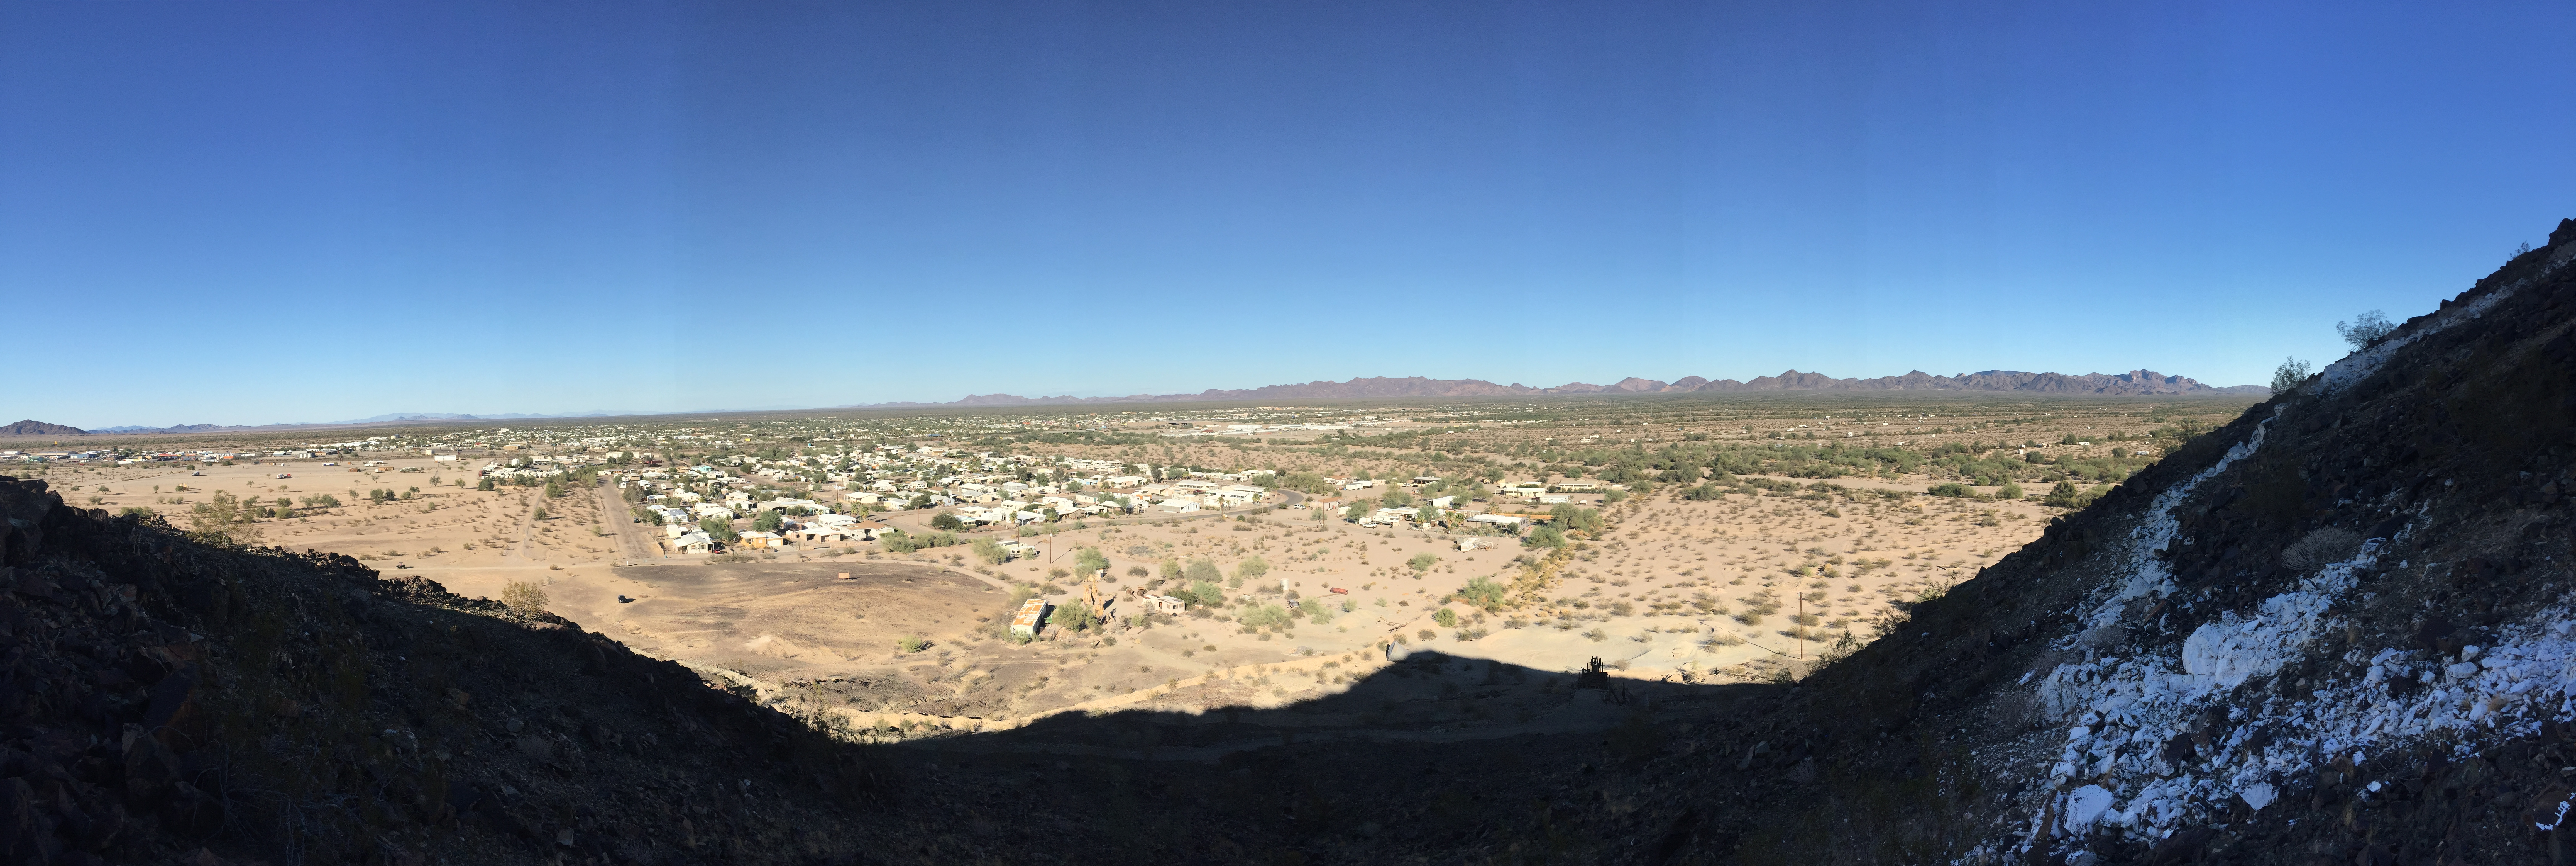 The view of Quartzsite from Q Mountain. According to the 2010 census, the population is 3,677.